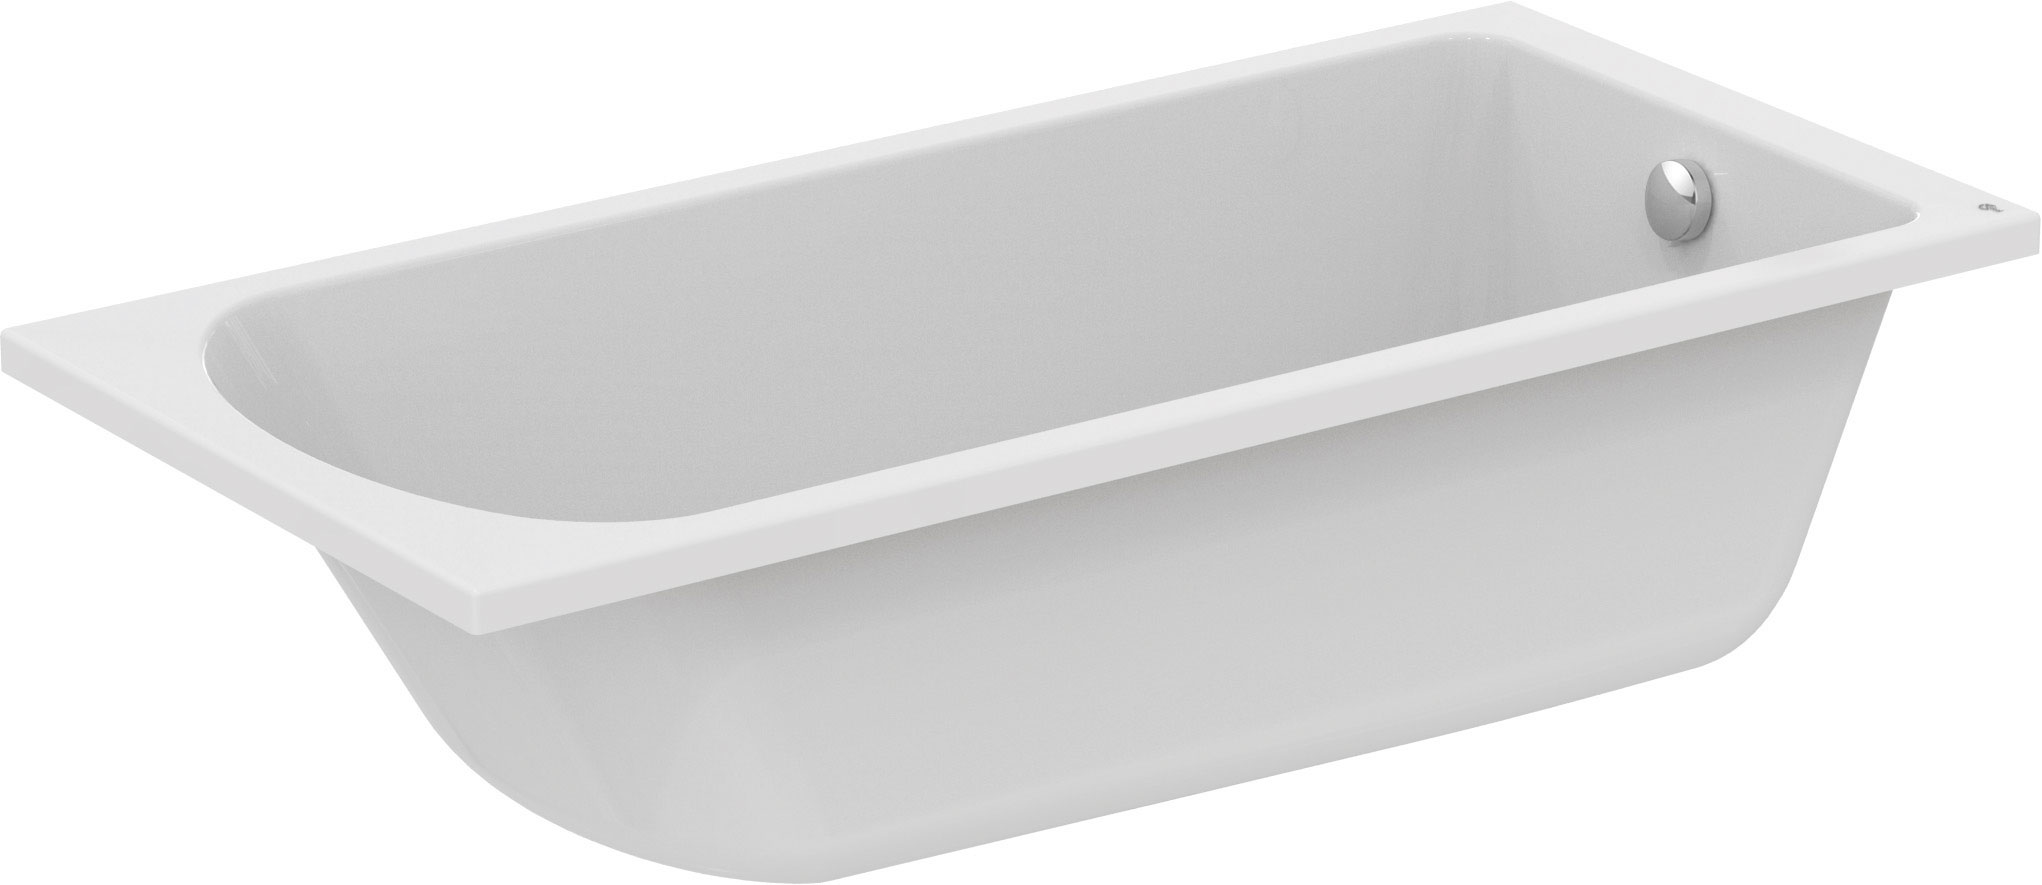 Ideal Standard Bath Hotline New K274701 170 X 80 Cm White